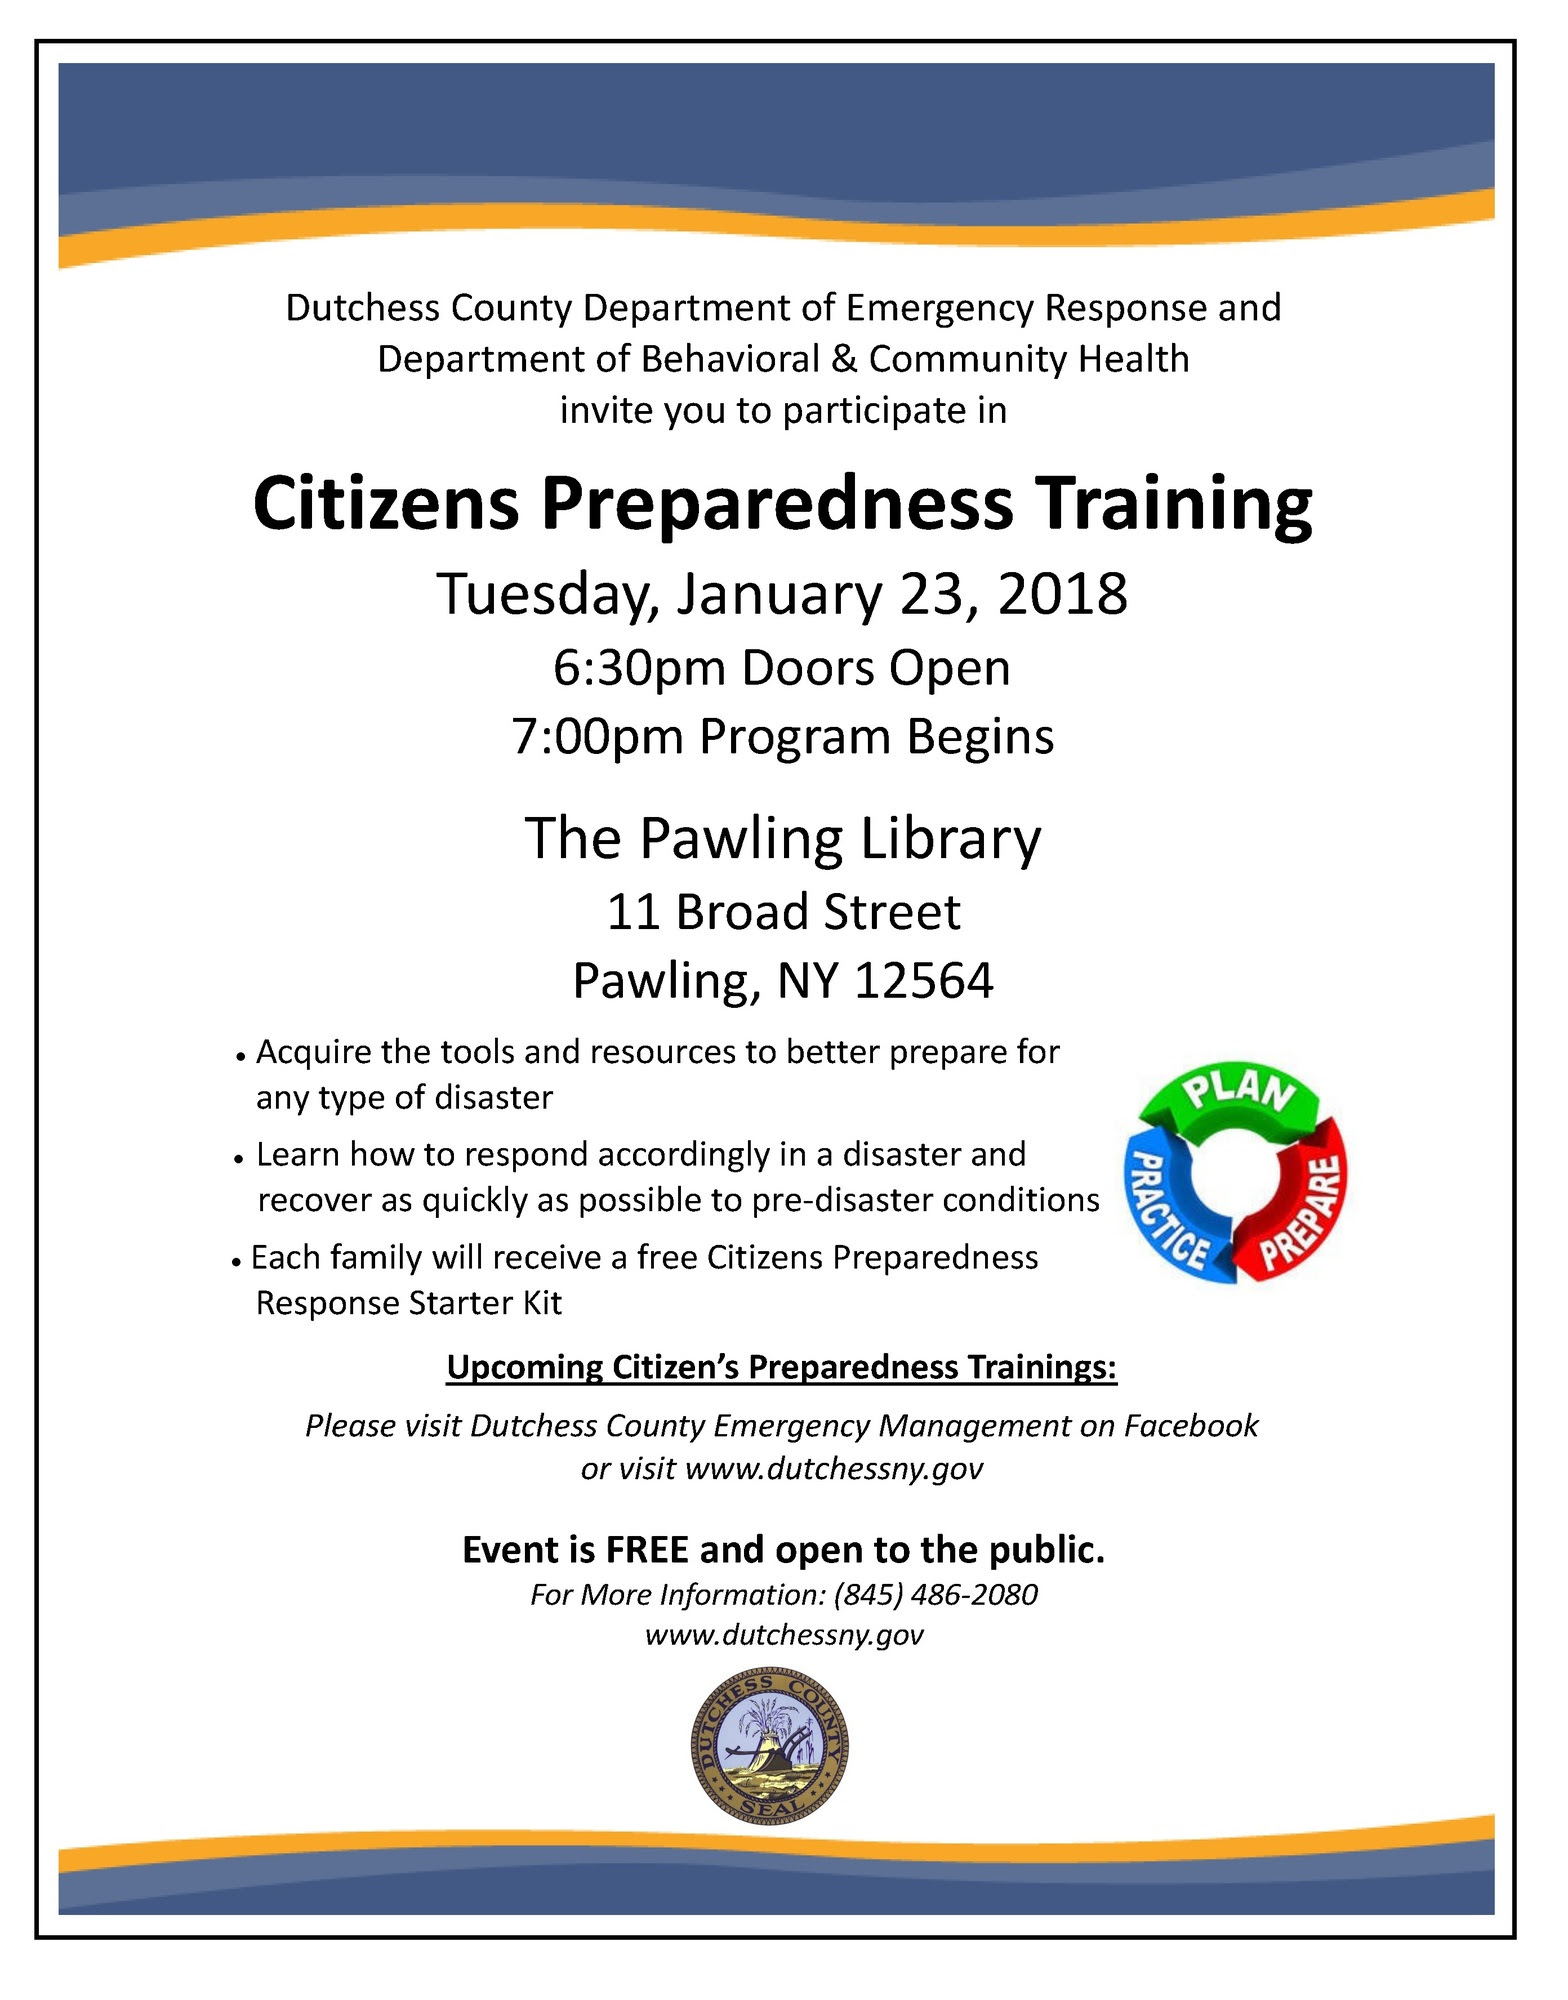 Citizens Preparedness - Pawling Library